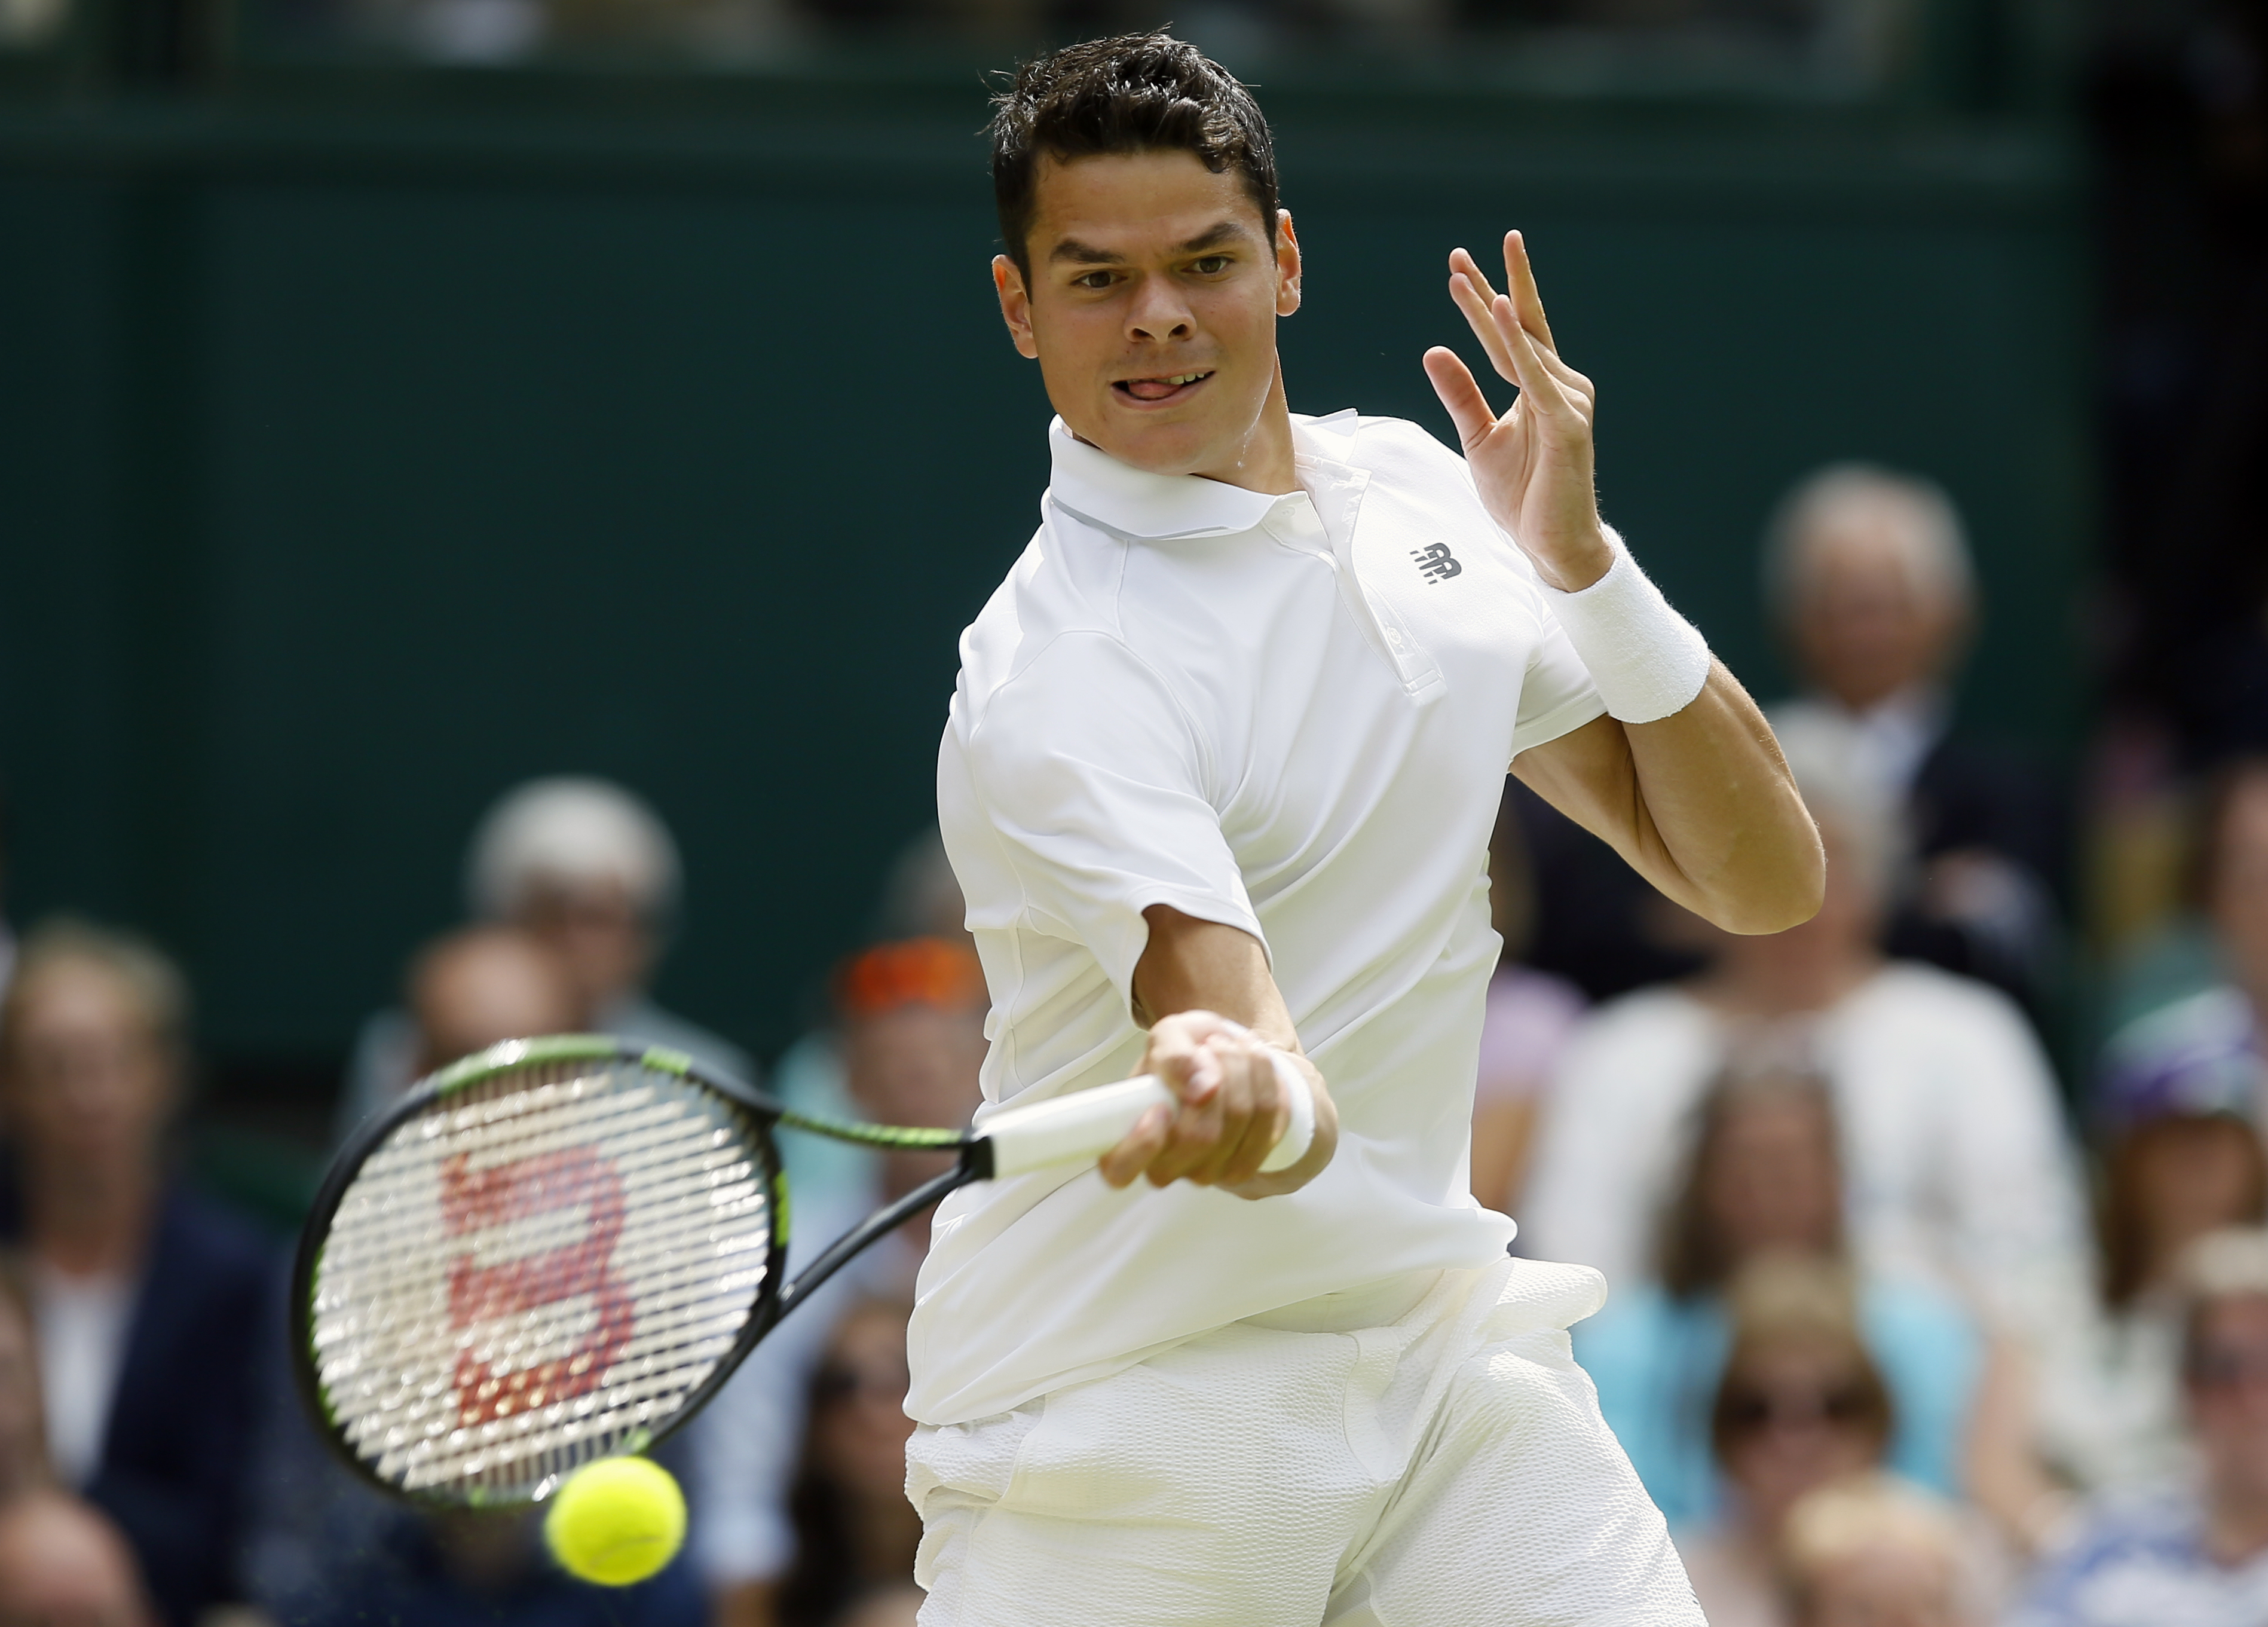 Milos Raonic of Canada returns to Andy Murray of Britain during the men's singles final on the fourteenth day of the Wimbledon Tennis Championships in London, Sunday, July 10, 2016. (AP Photo/Kirsty Wigglesworth)